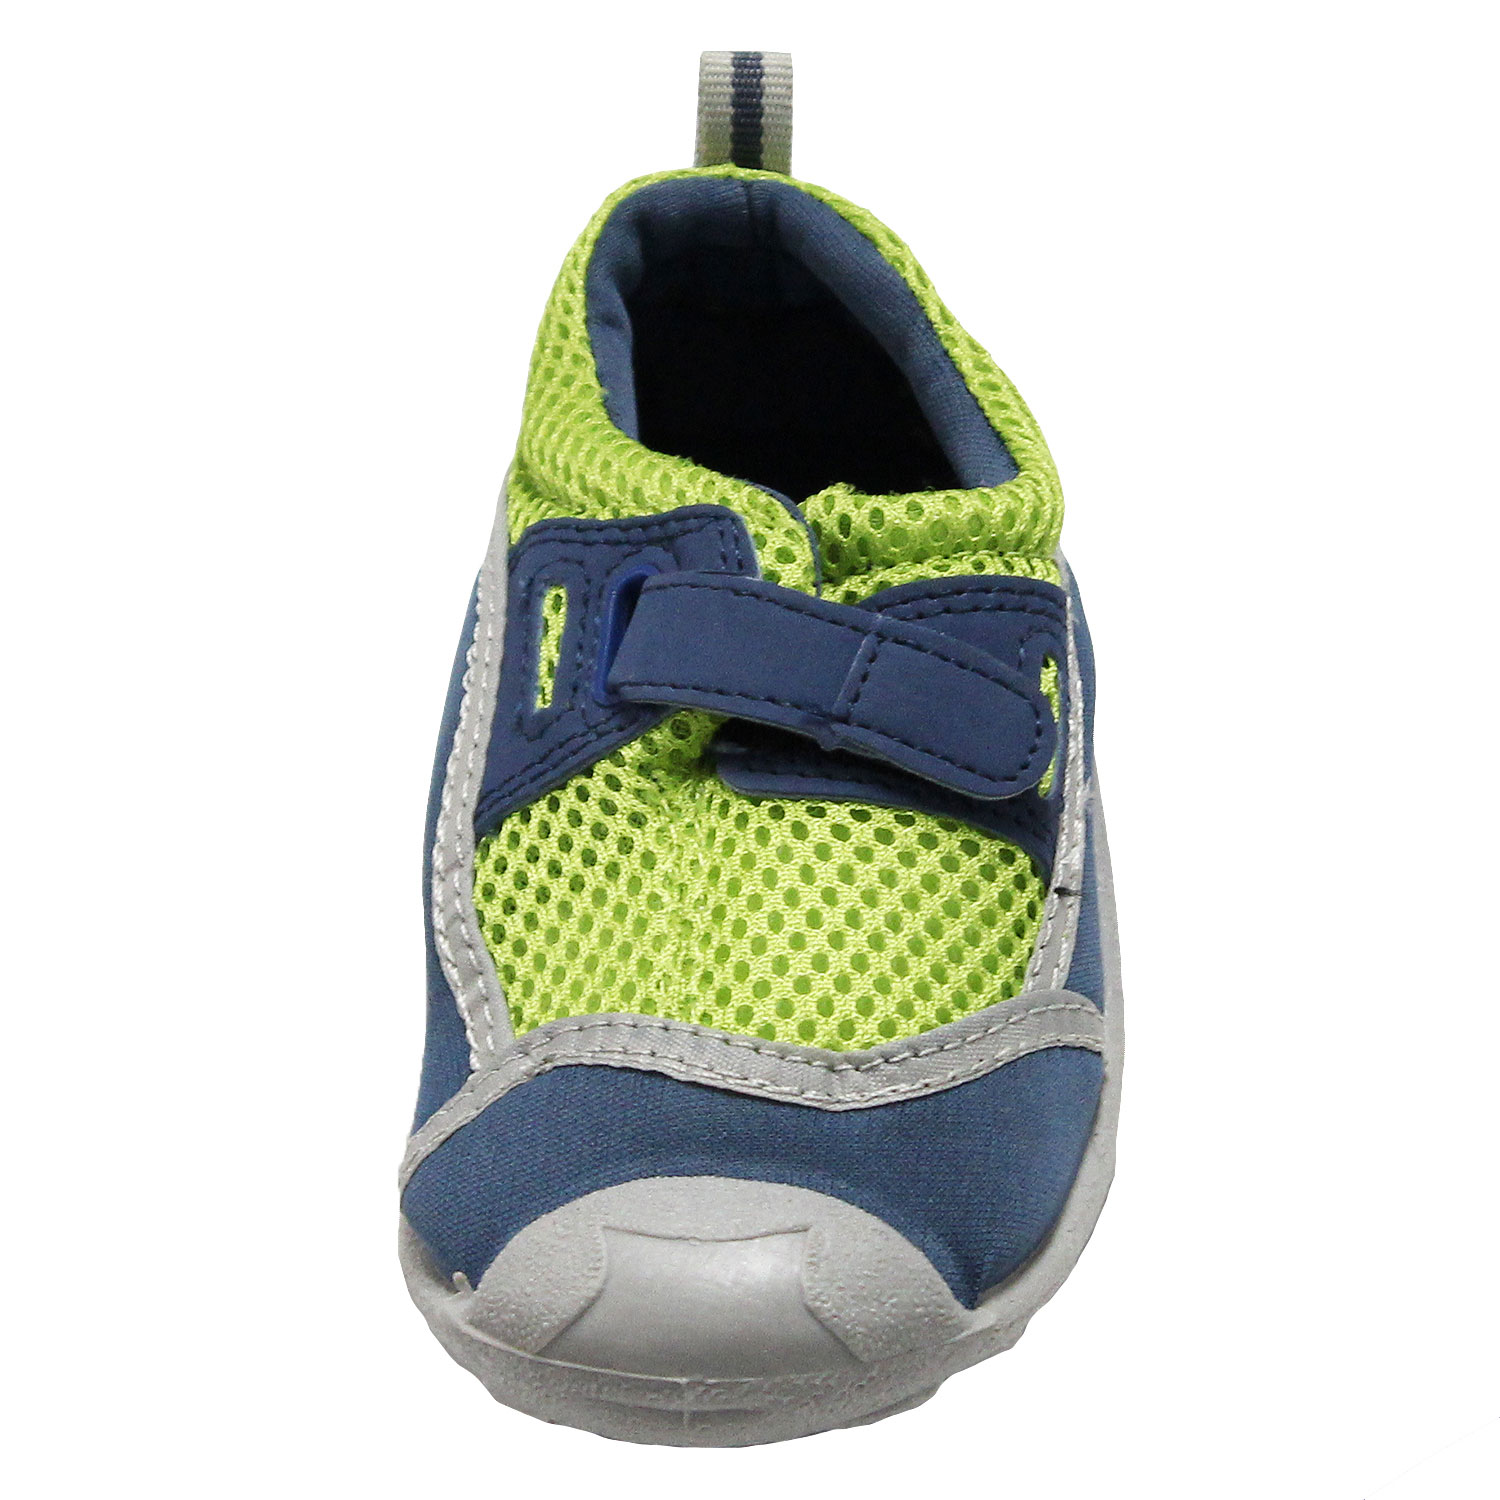 One Step Ahead Sun Smarties Kids Swim Shoes with Anti Microbial Insoles